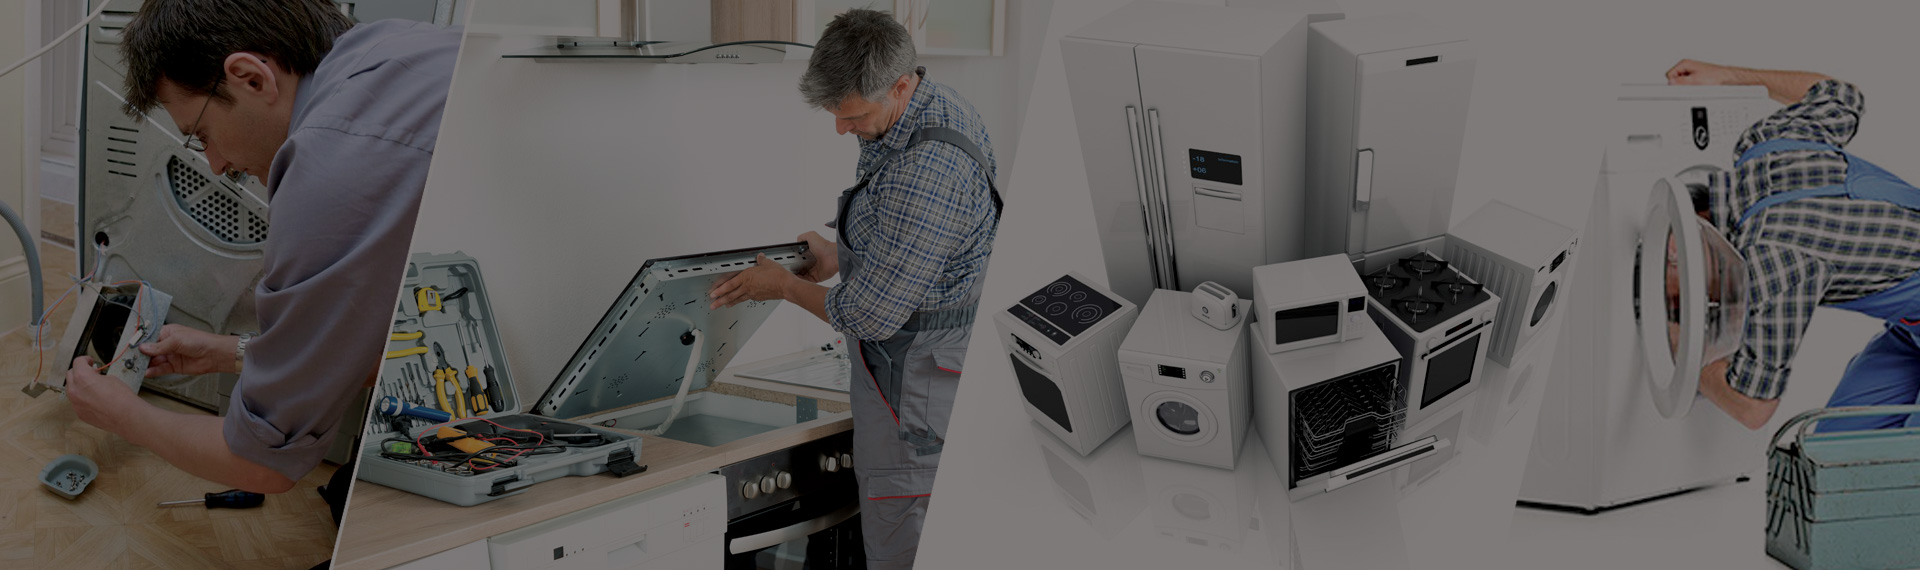 Teckrom Appliance Repair La Mesa CA